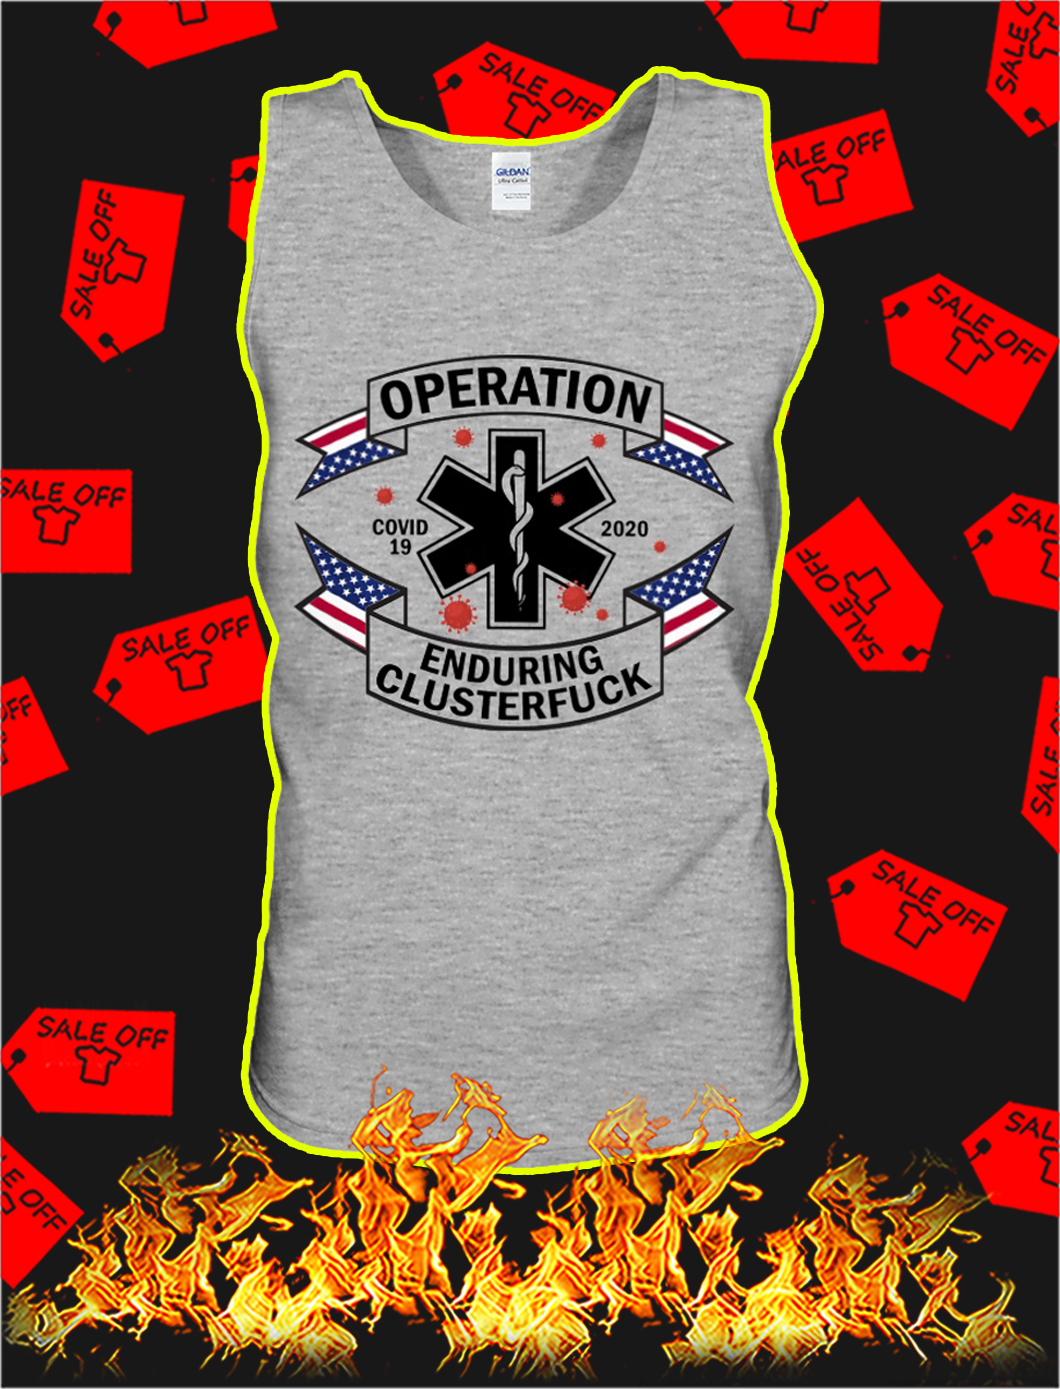 Operation enduring clusterfuck covid 19 2020 tank top